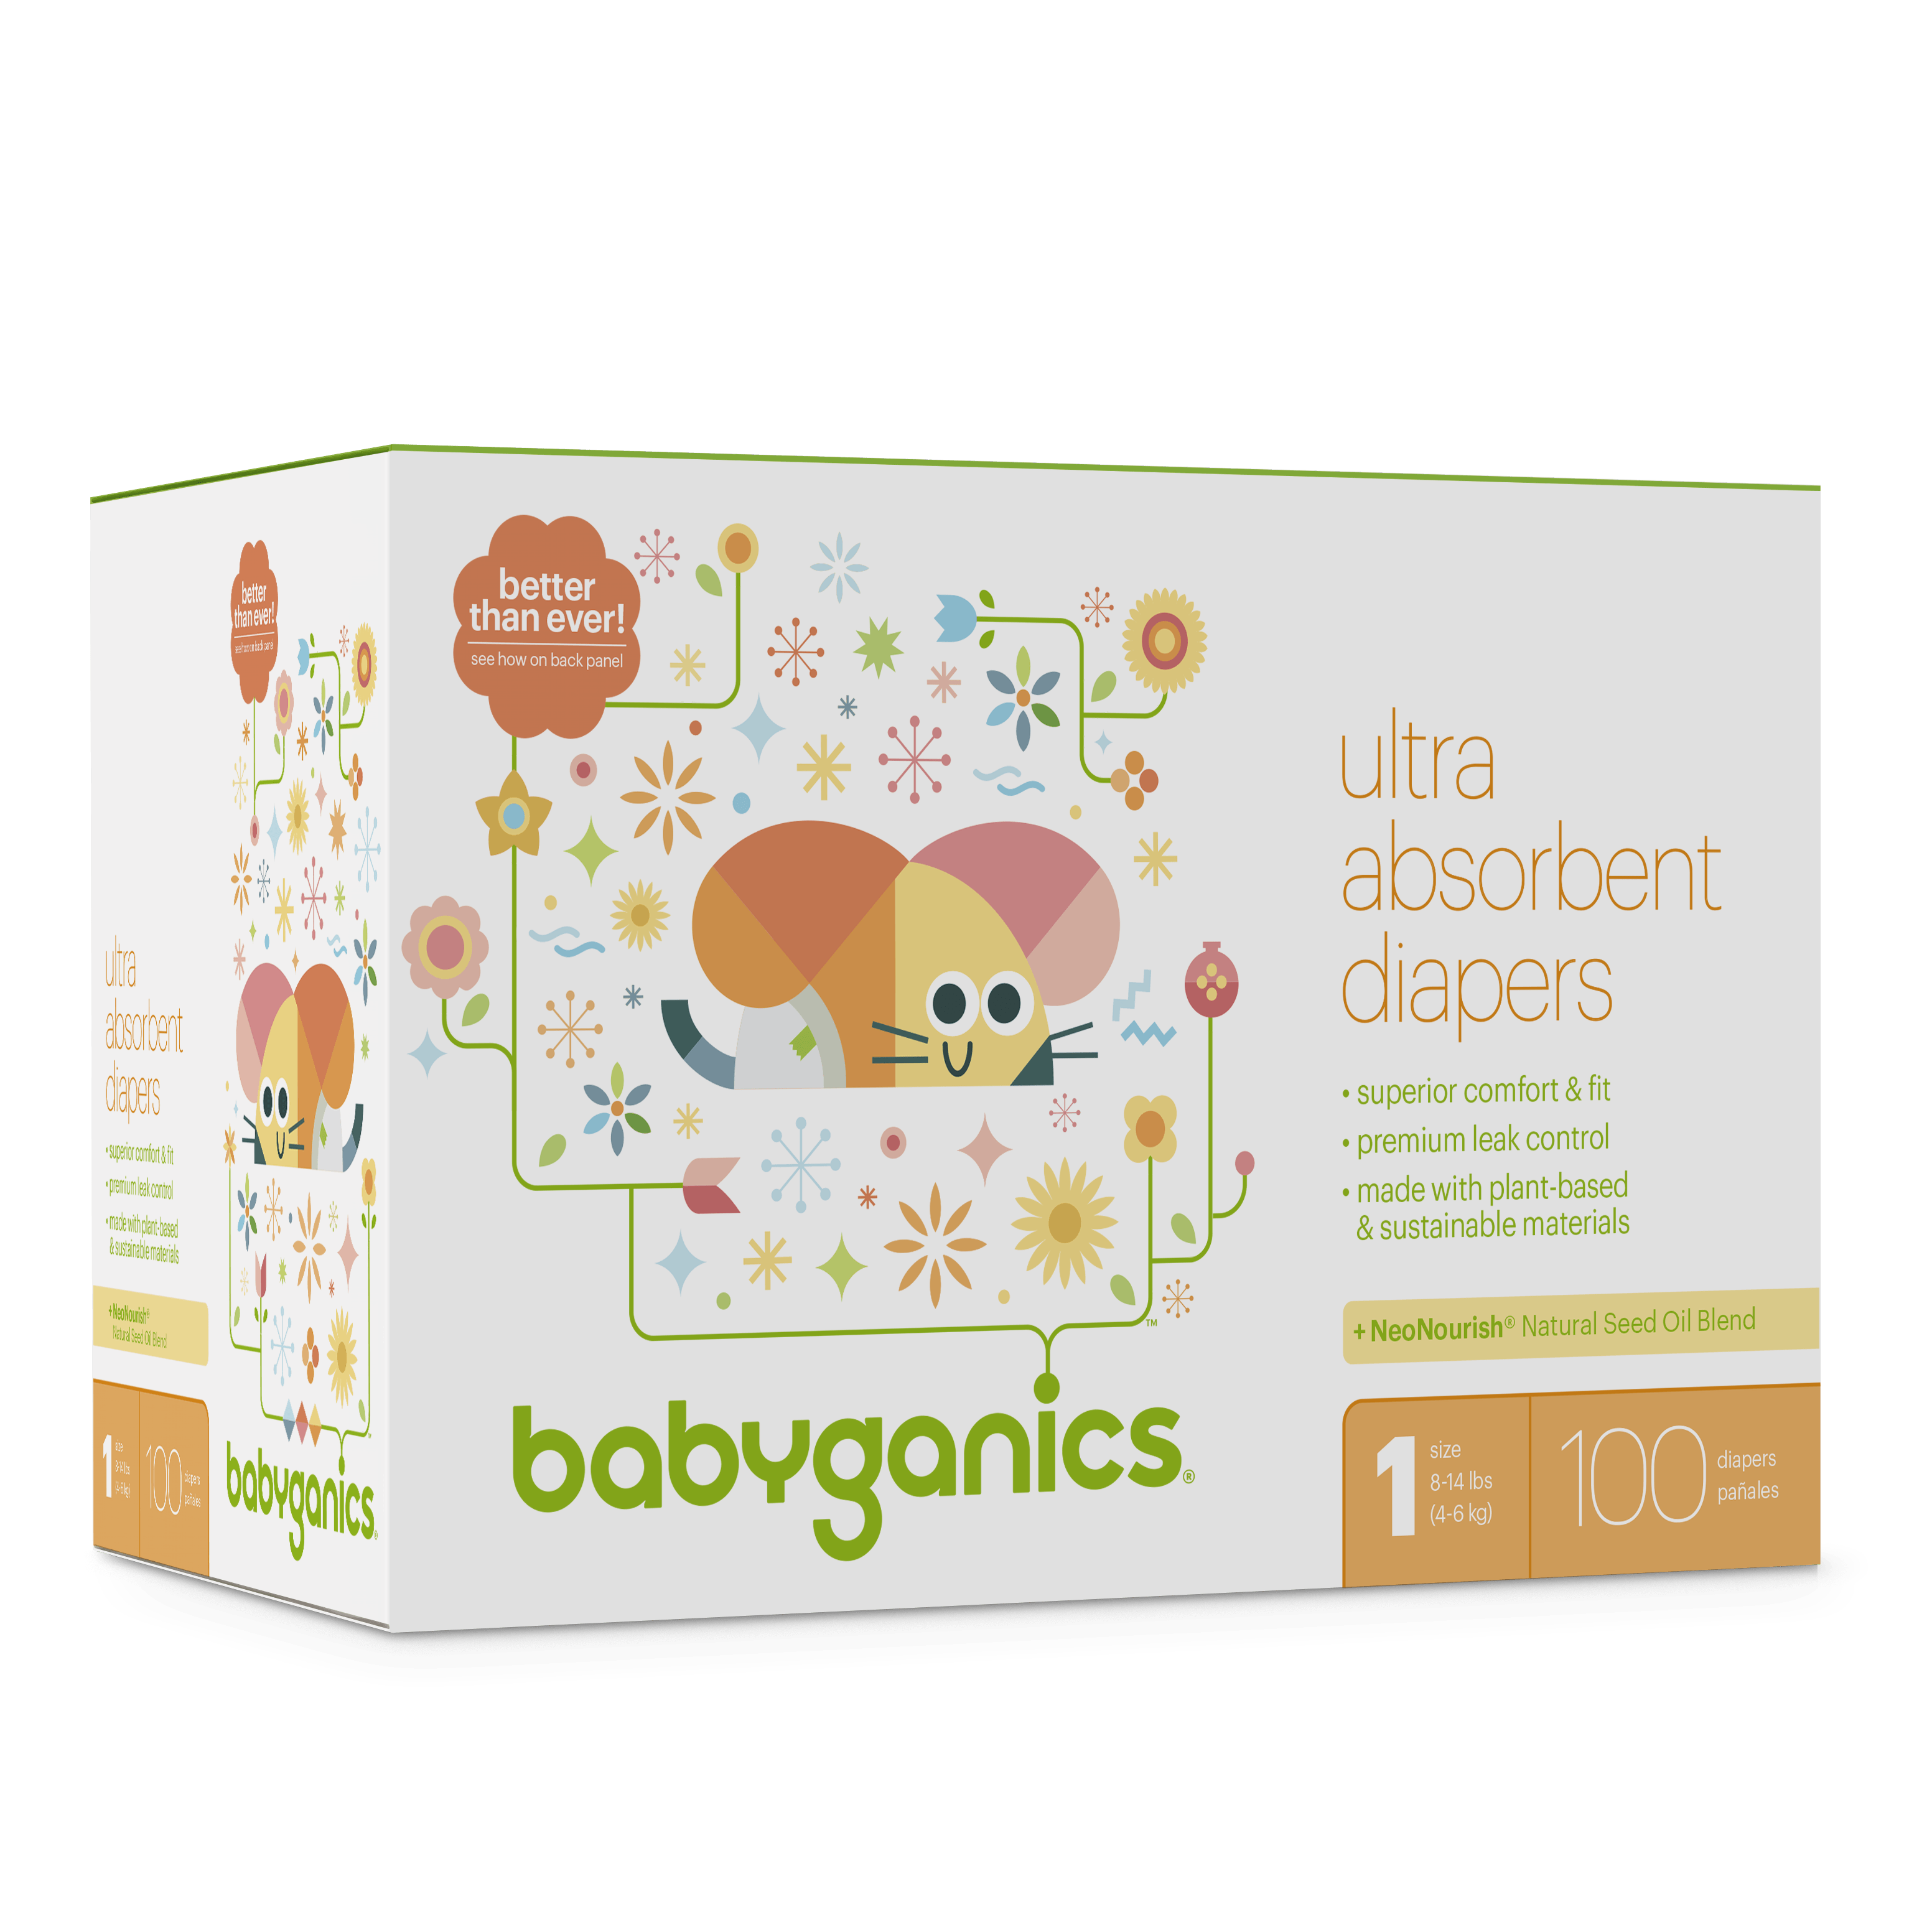 Babyganics Ultra Absorbent Diapers, Size 1, 100 Diapers